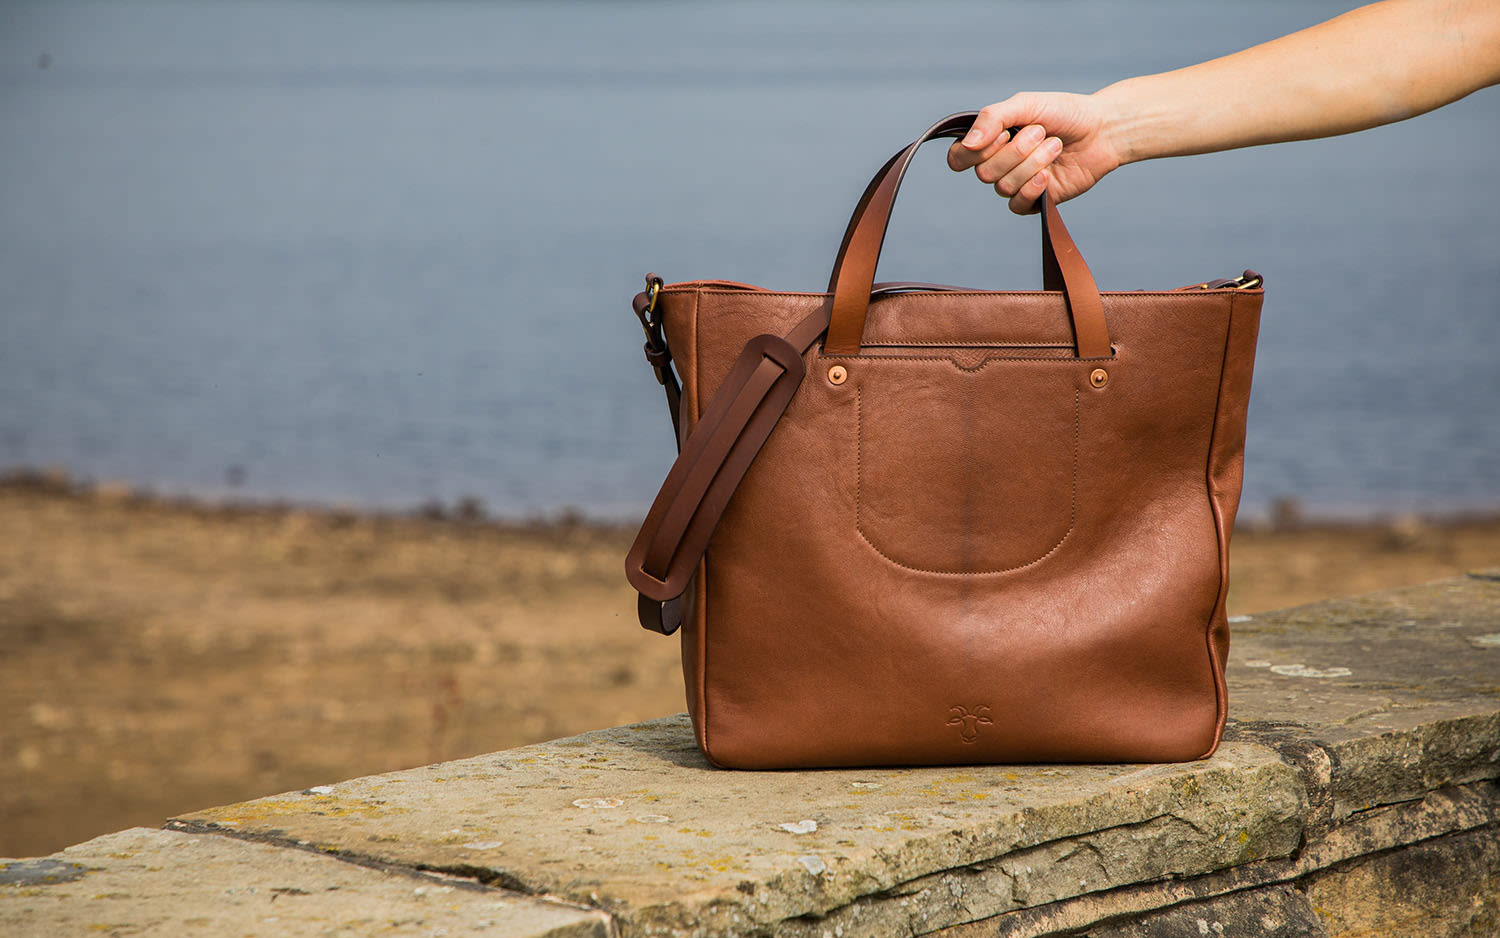 A brown handbag on a wall with a person's arm picking it up